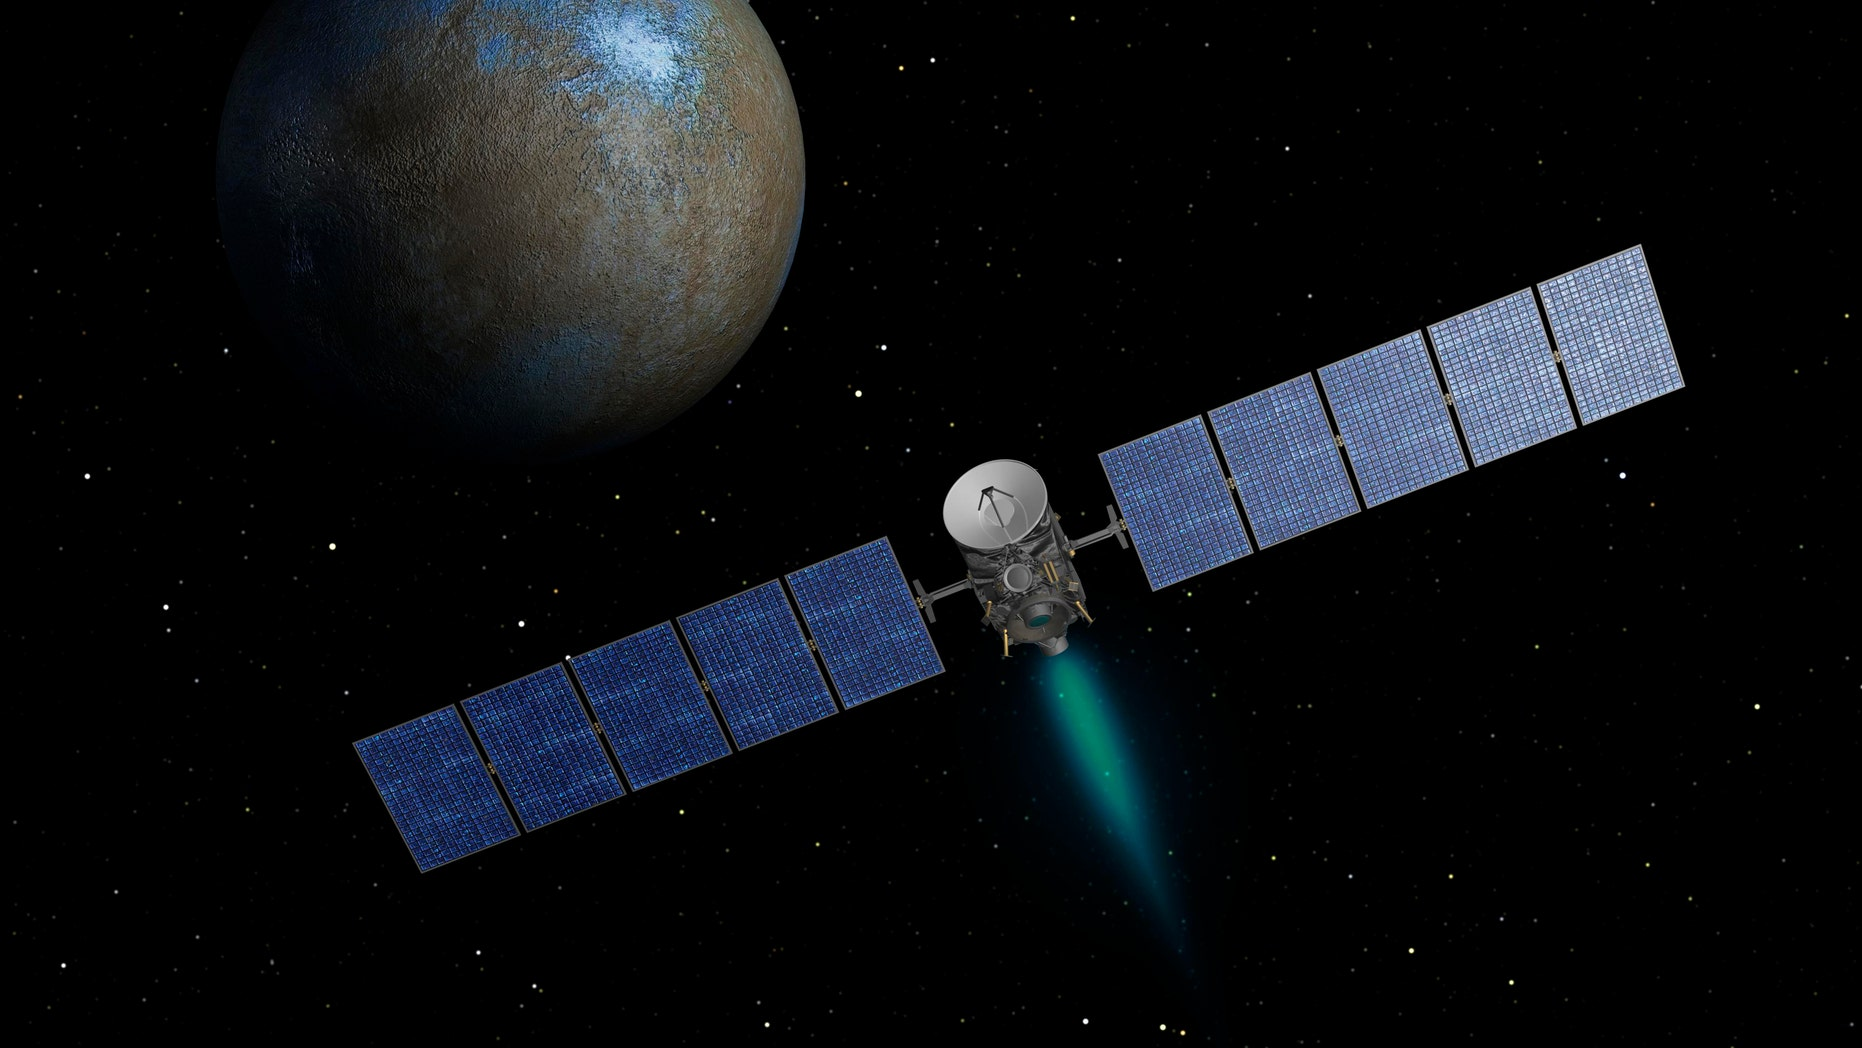 NASA's Dawn spacecraft heads toward Ceres as seen in this artist's conception.